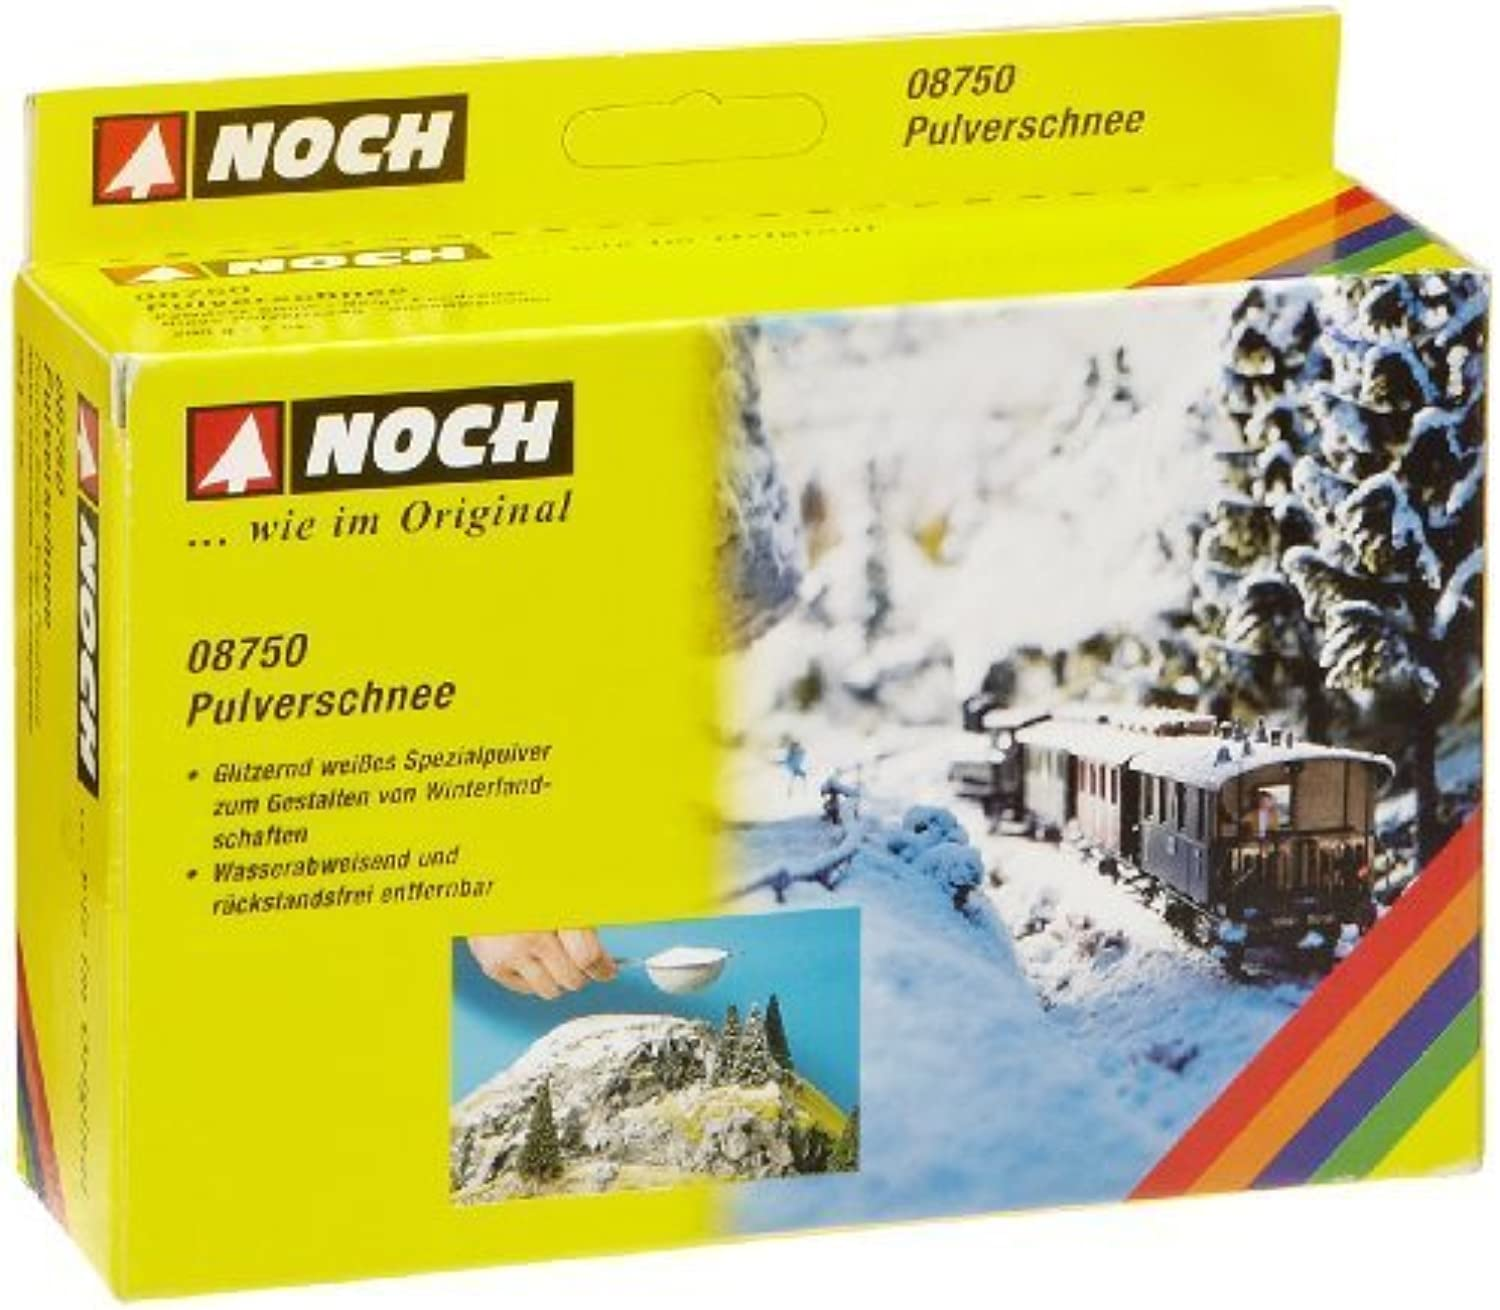 Noch 8750 Powdery Snow 200g by Noch nonbtm1123-new toys